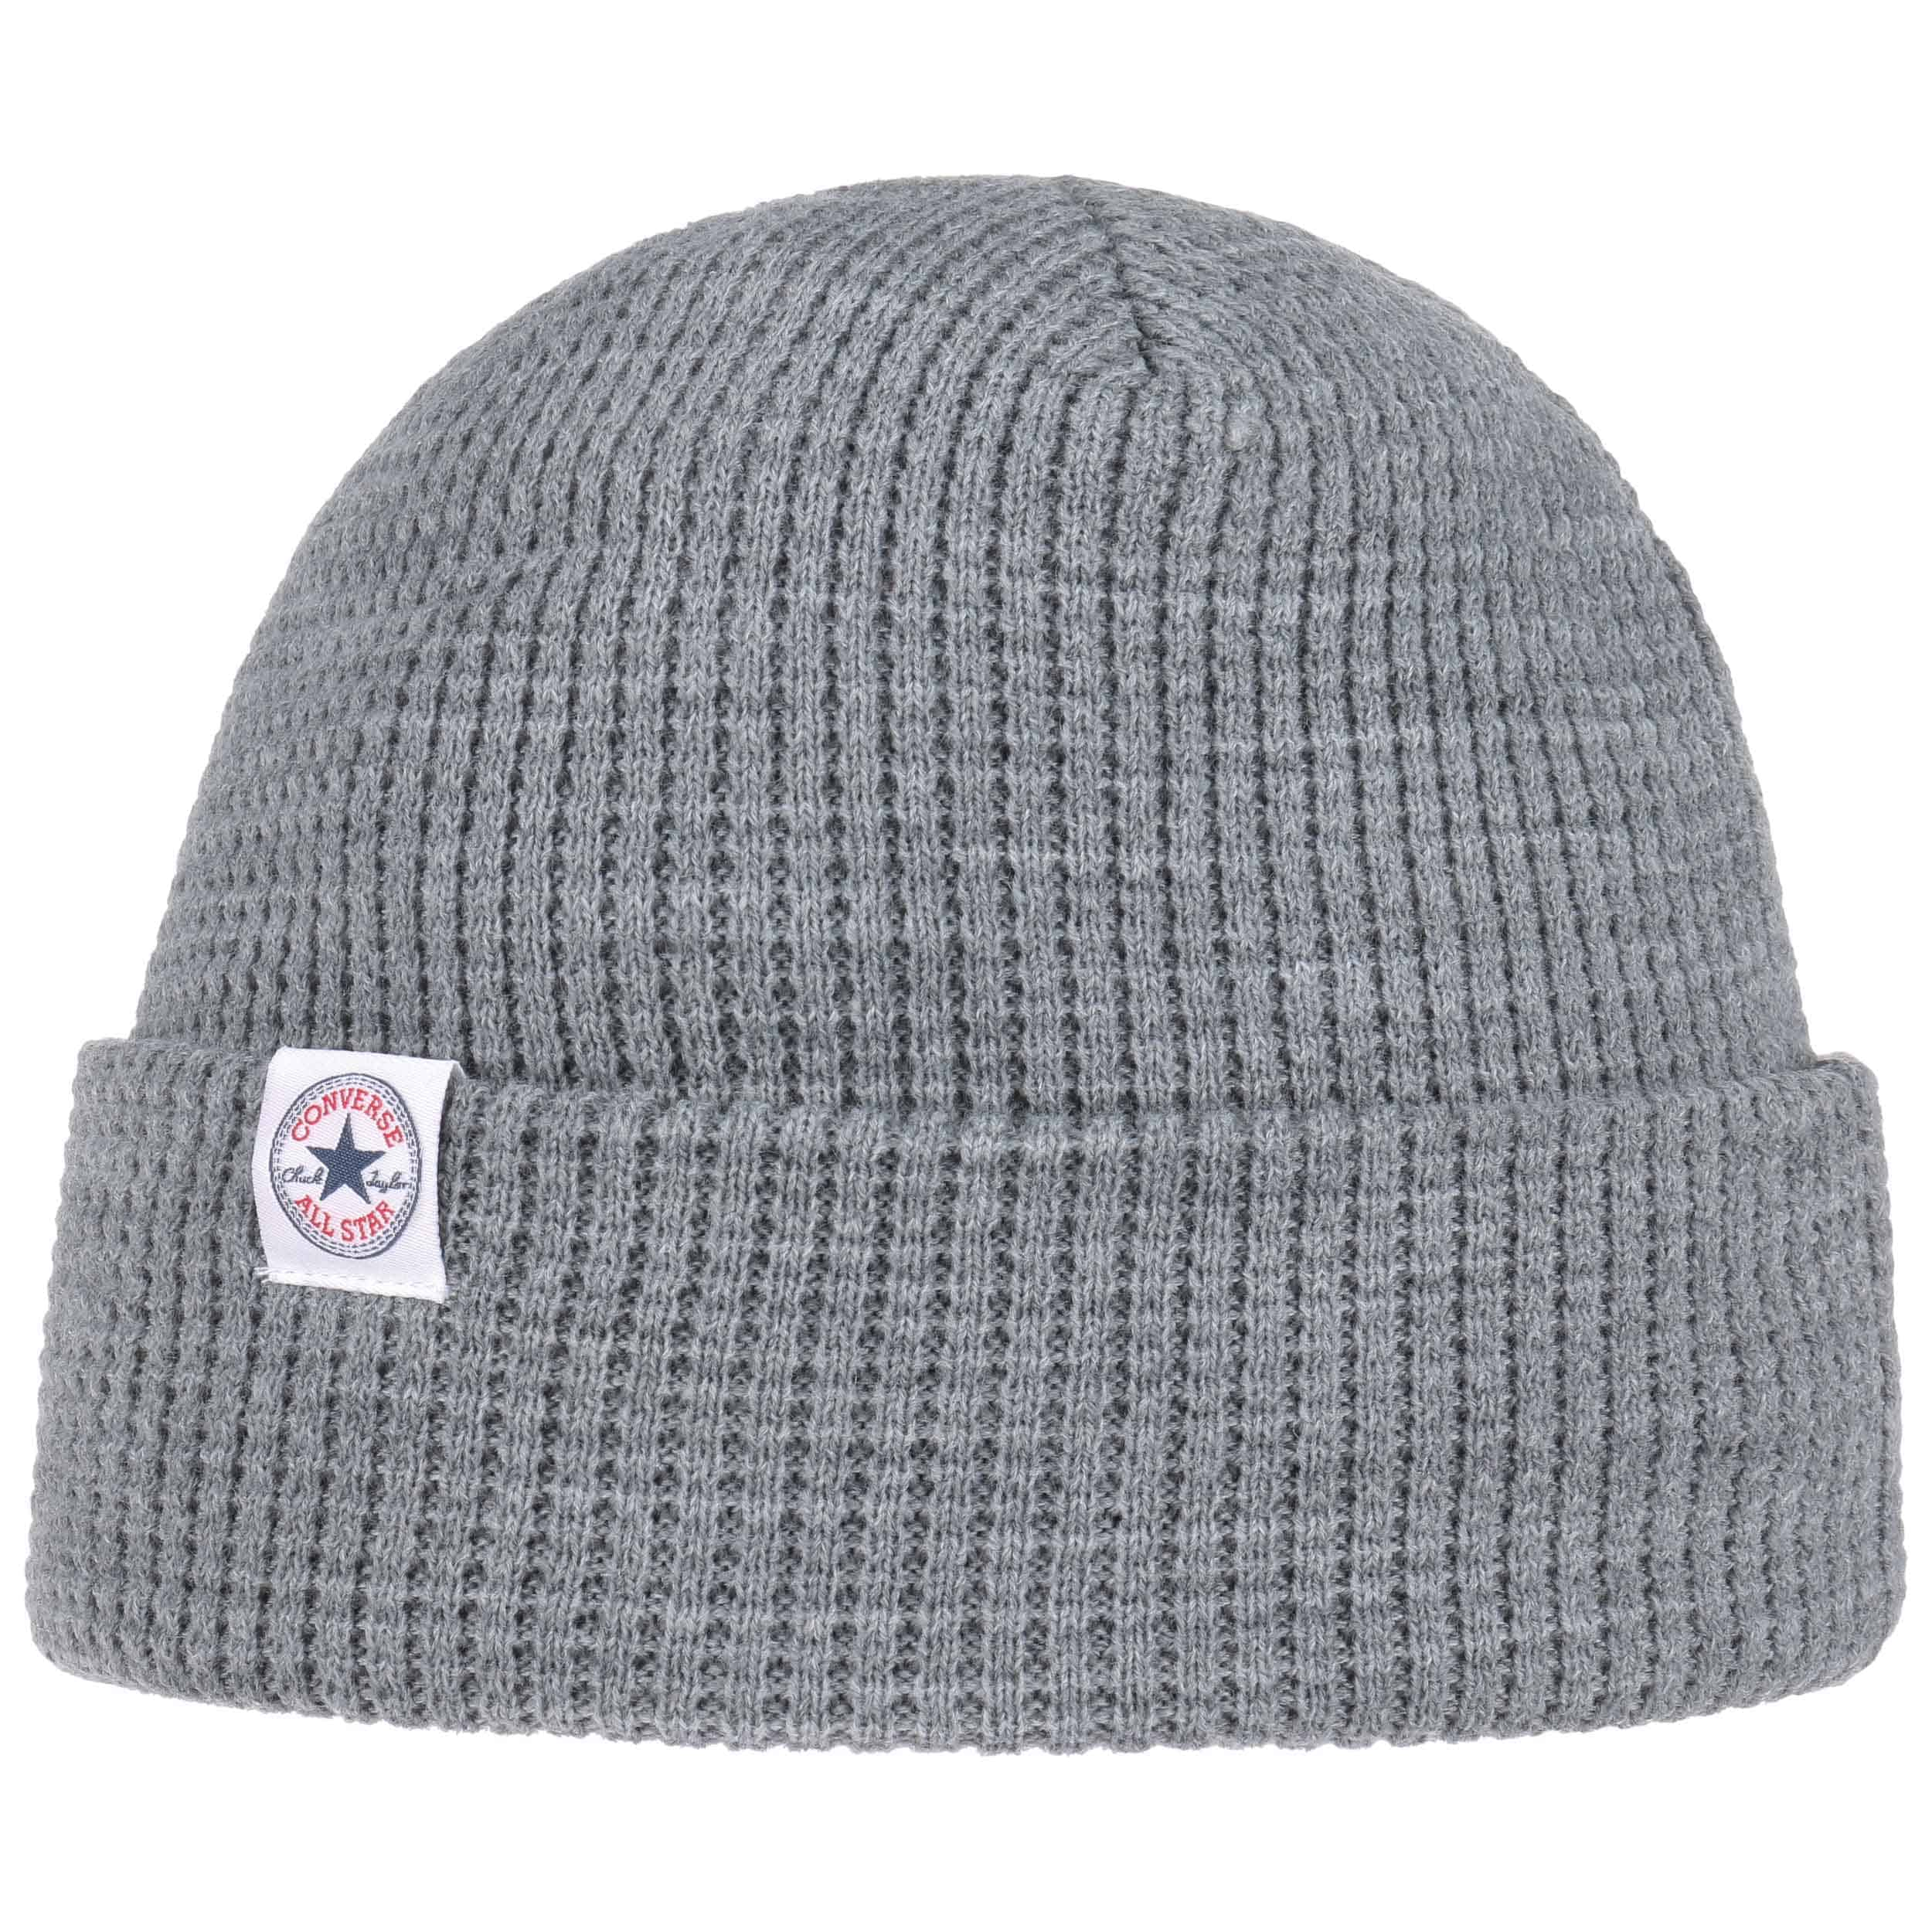 e47f39e3ef8 ... Thermal 2 in 1 Beanie by Converse - light grey 4 ...